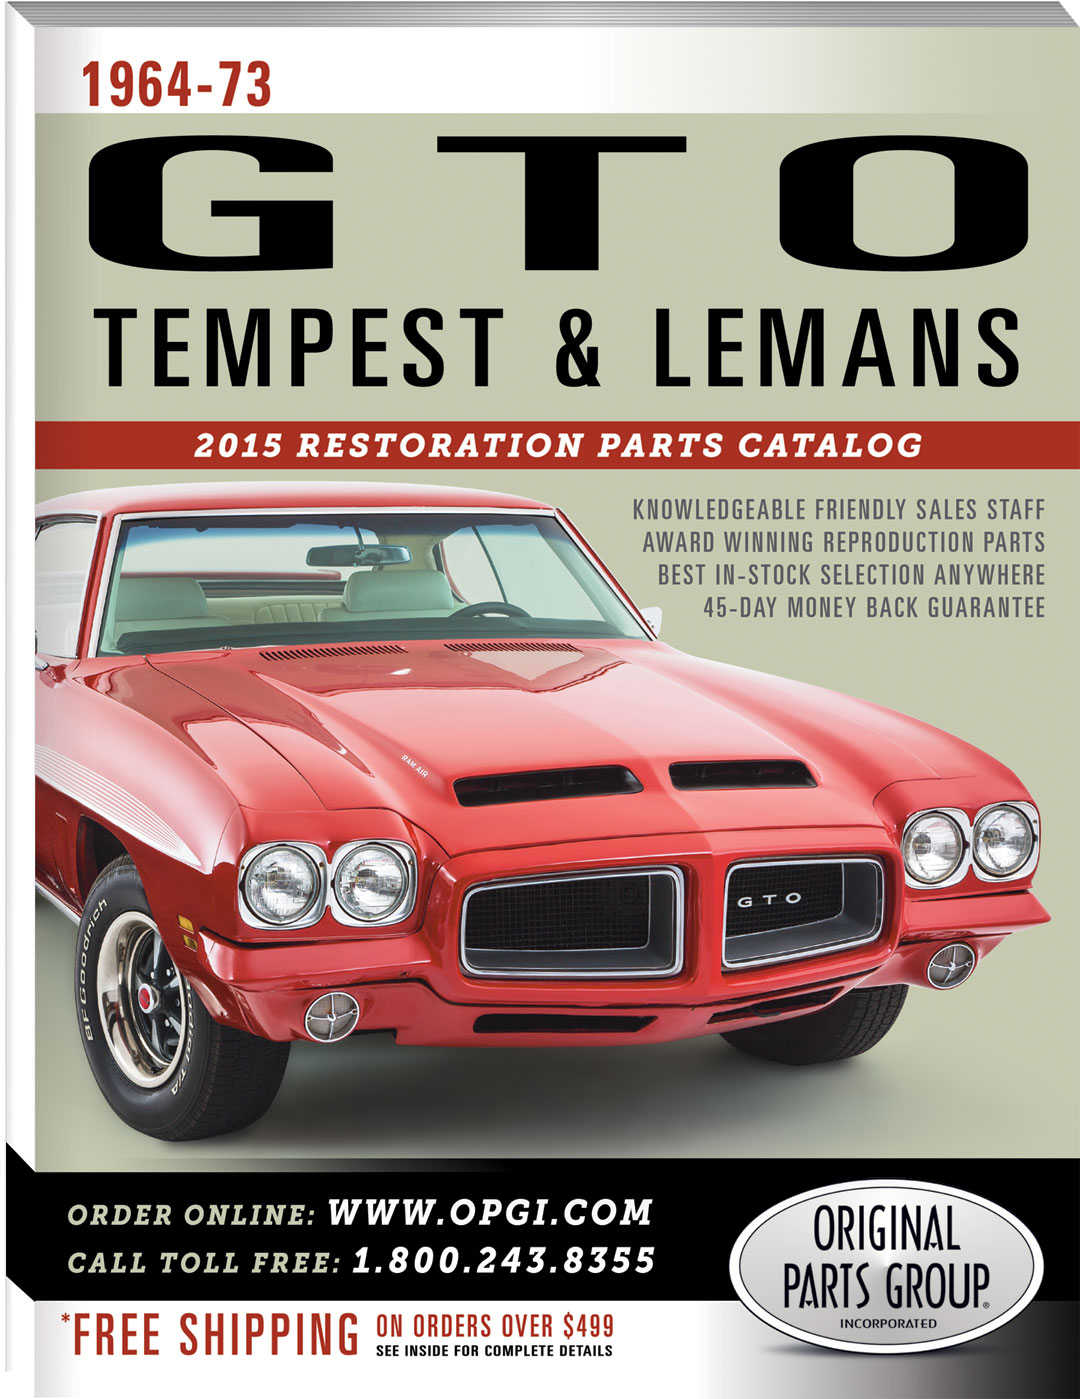 2015 1964-73 GTO and 1961-73 Tempest & Lemans Restoration Parts ...